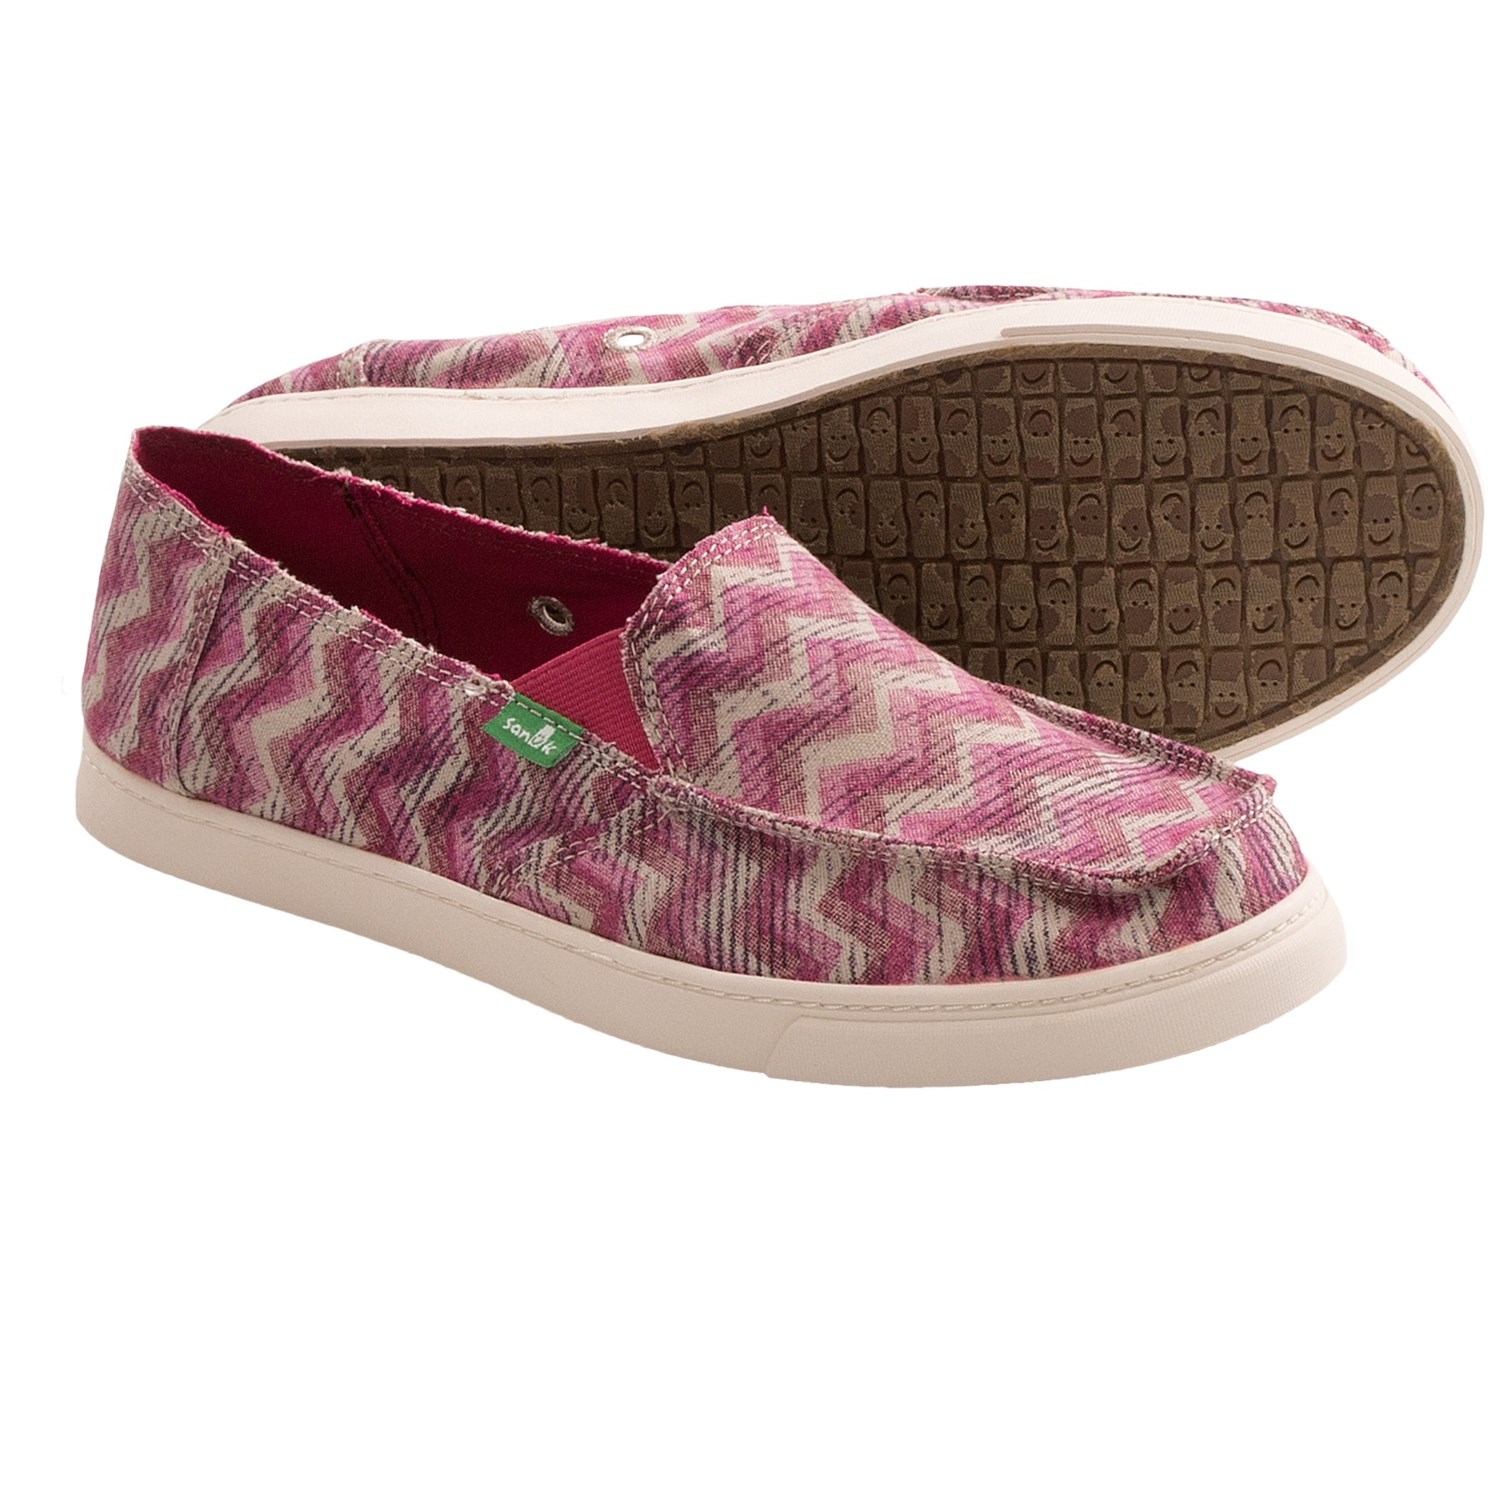 Online clothing stores Womens sanuk shoes sale